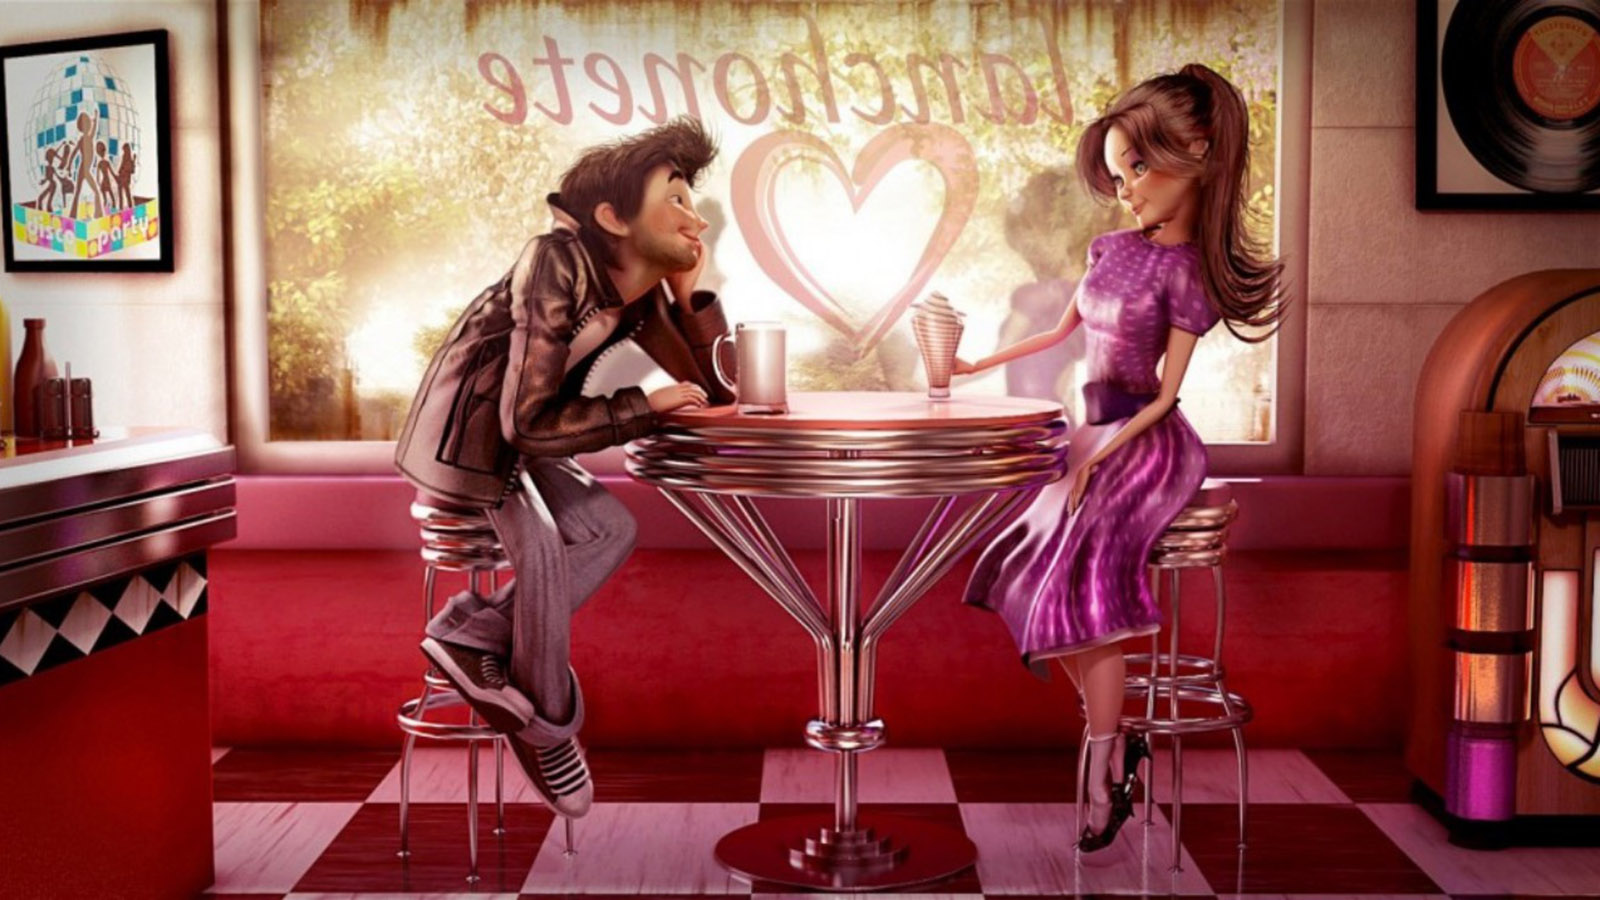 Top Cartoon Love HD Wallpaper Free Download - 3d-animated-love-images-8-free-hd-wallpaper  Pictures_101777.jpg